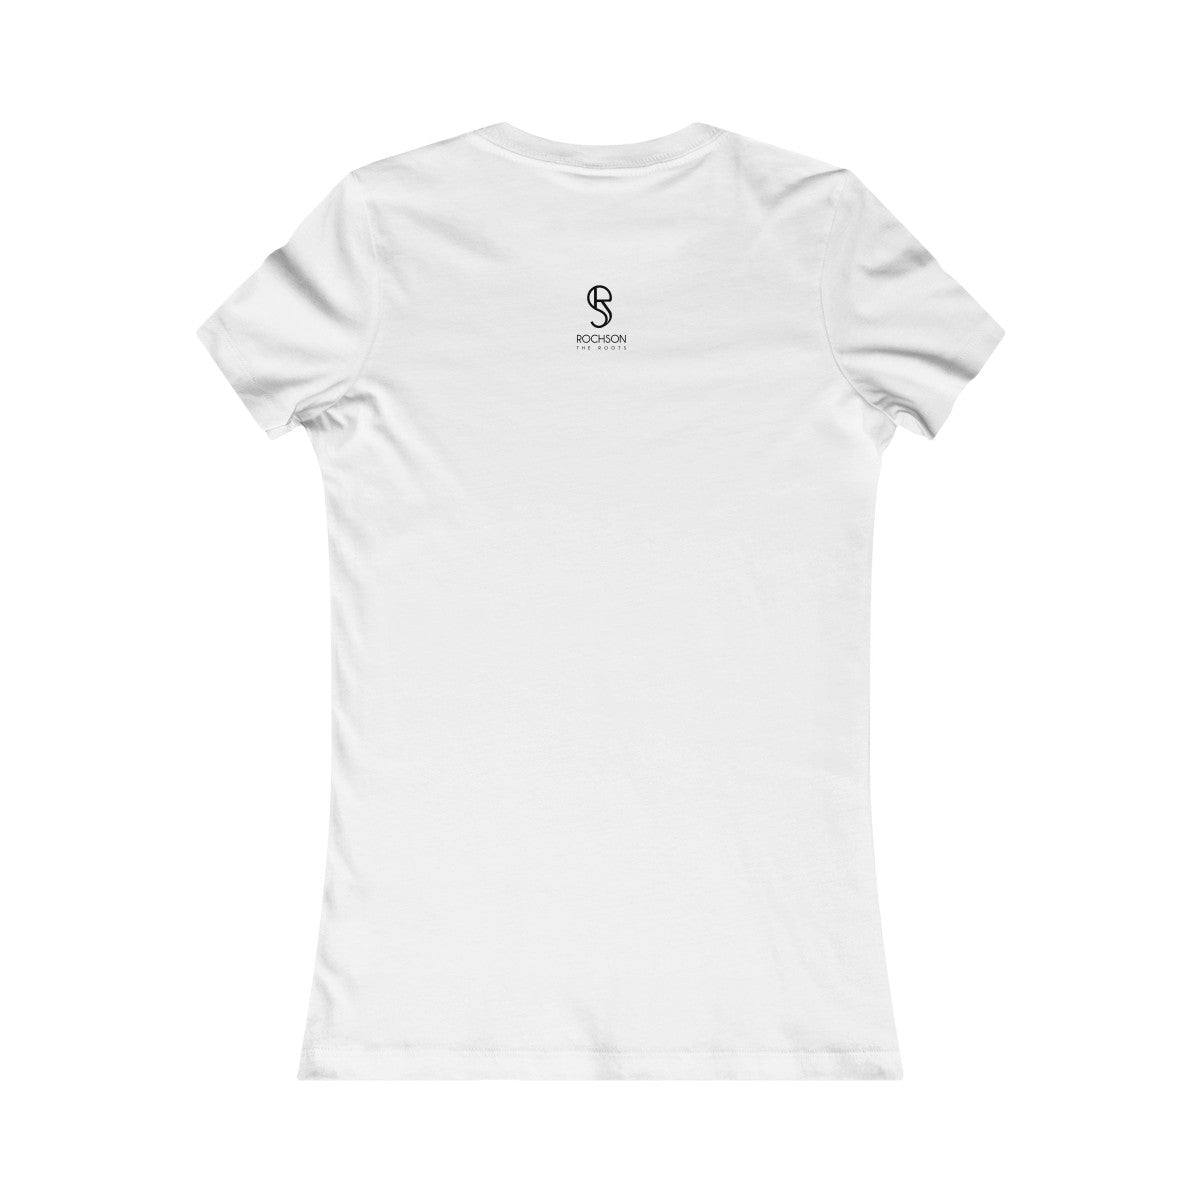 The Roots - tee-shirt Femme